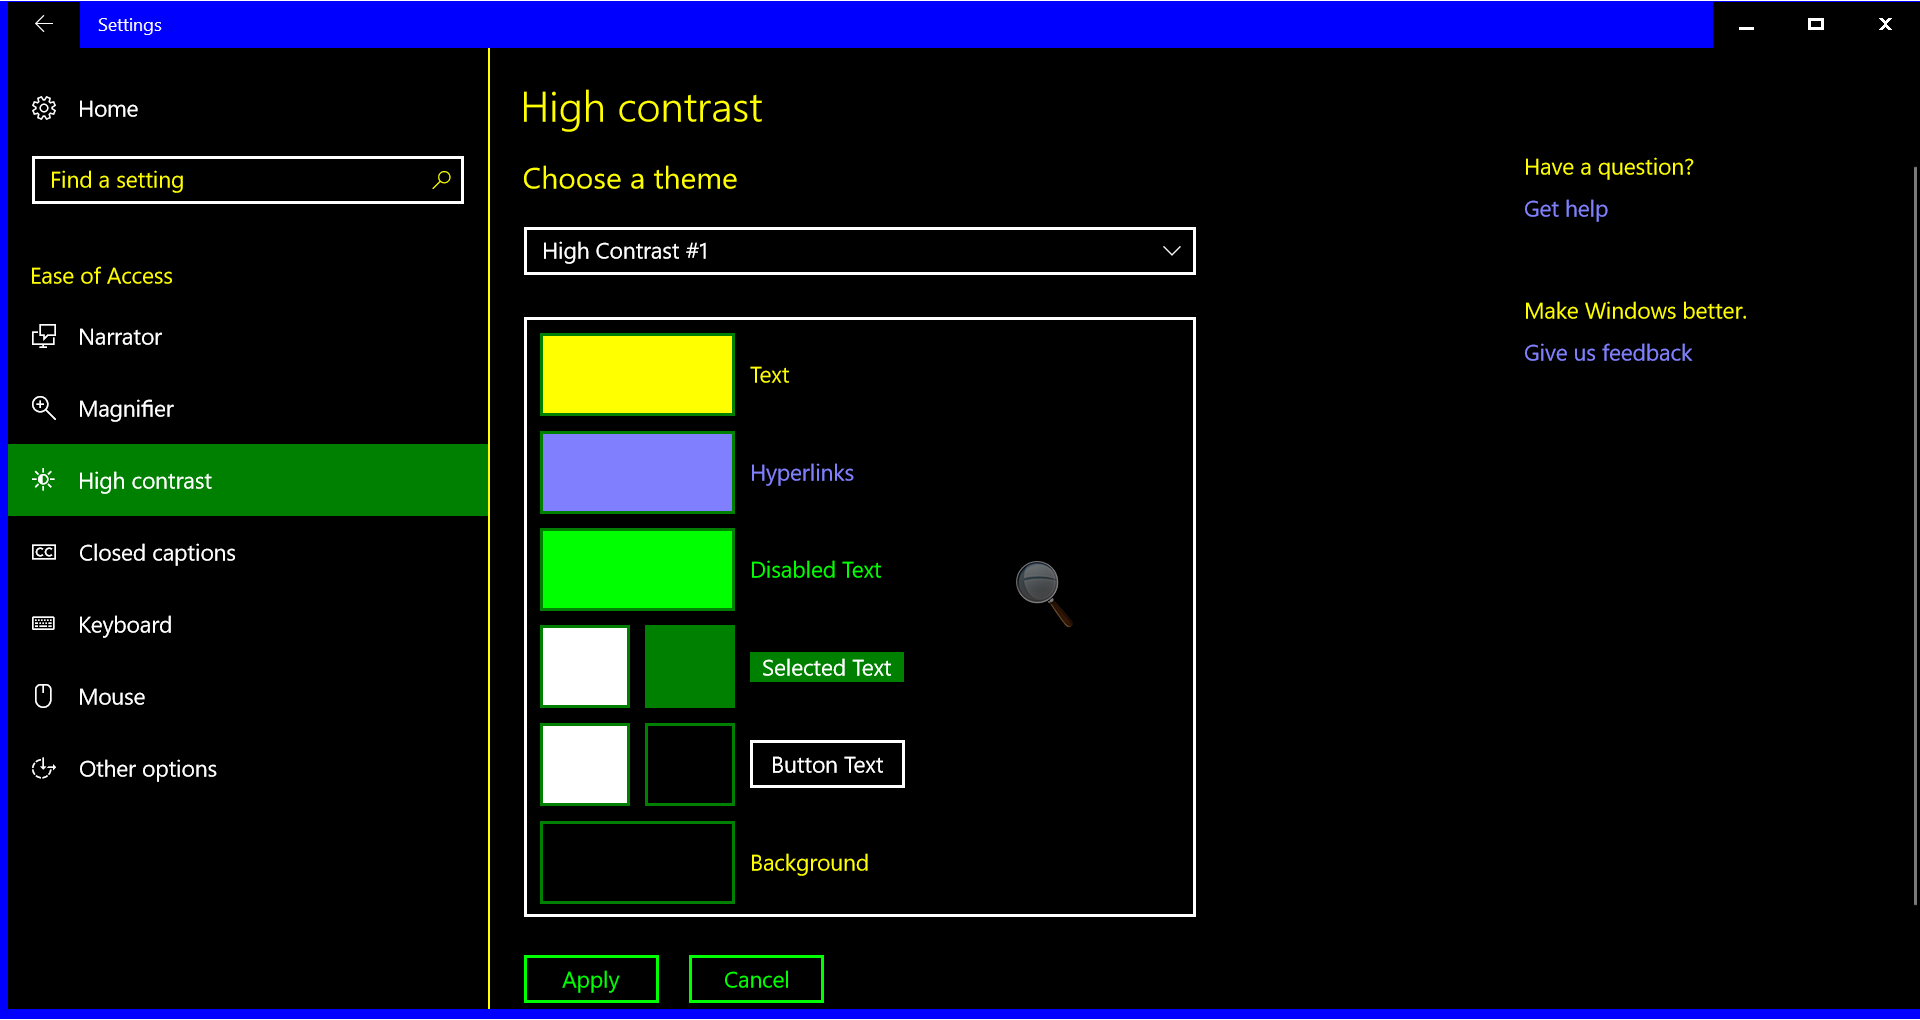 Screenshot of high contrast theme 1 in the settings app